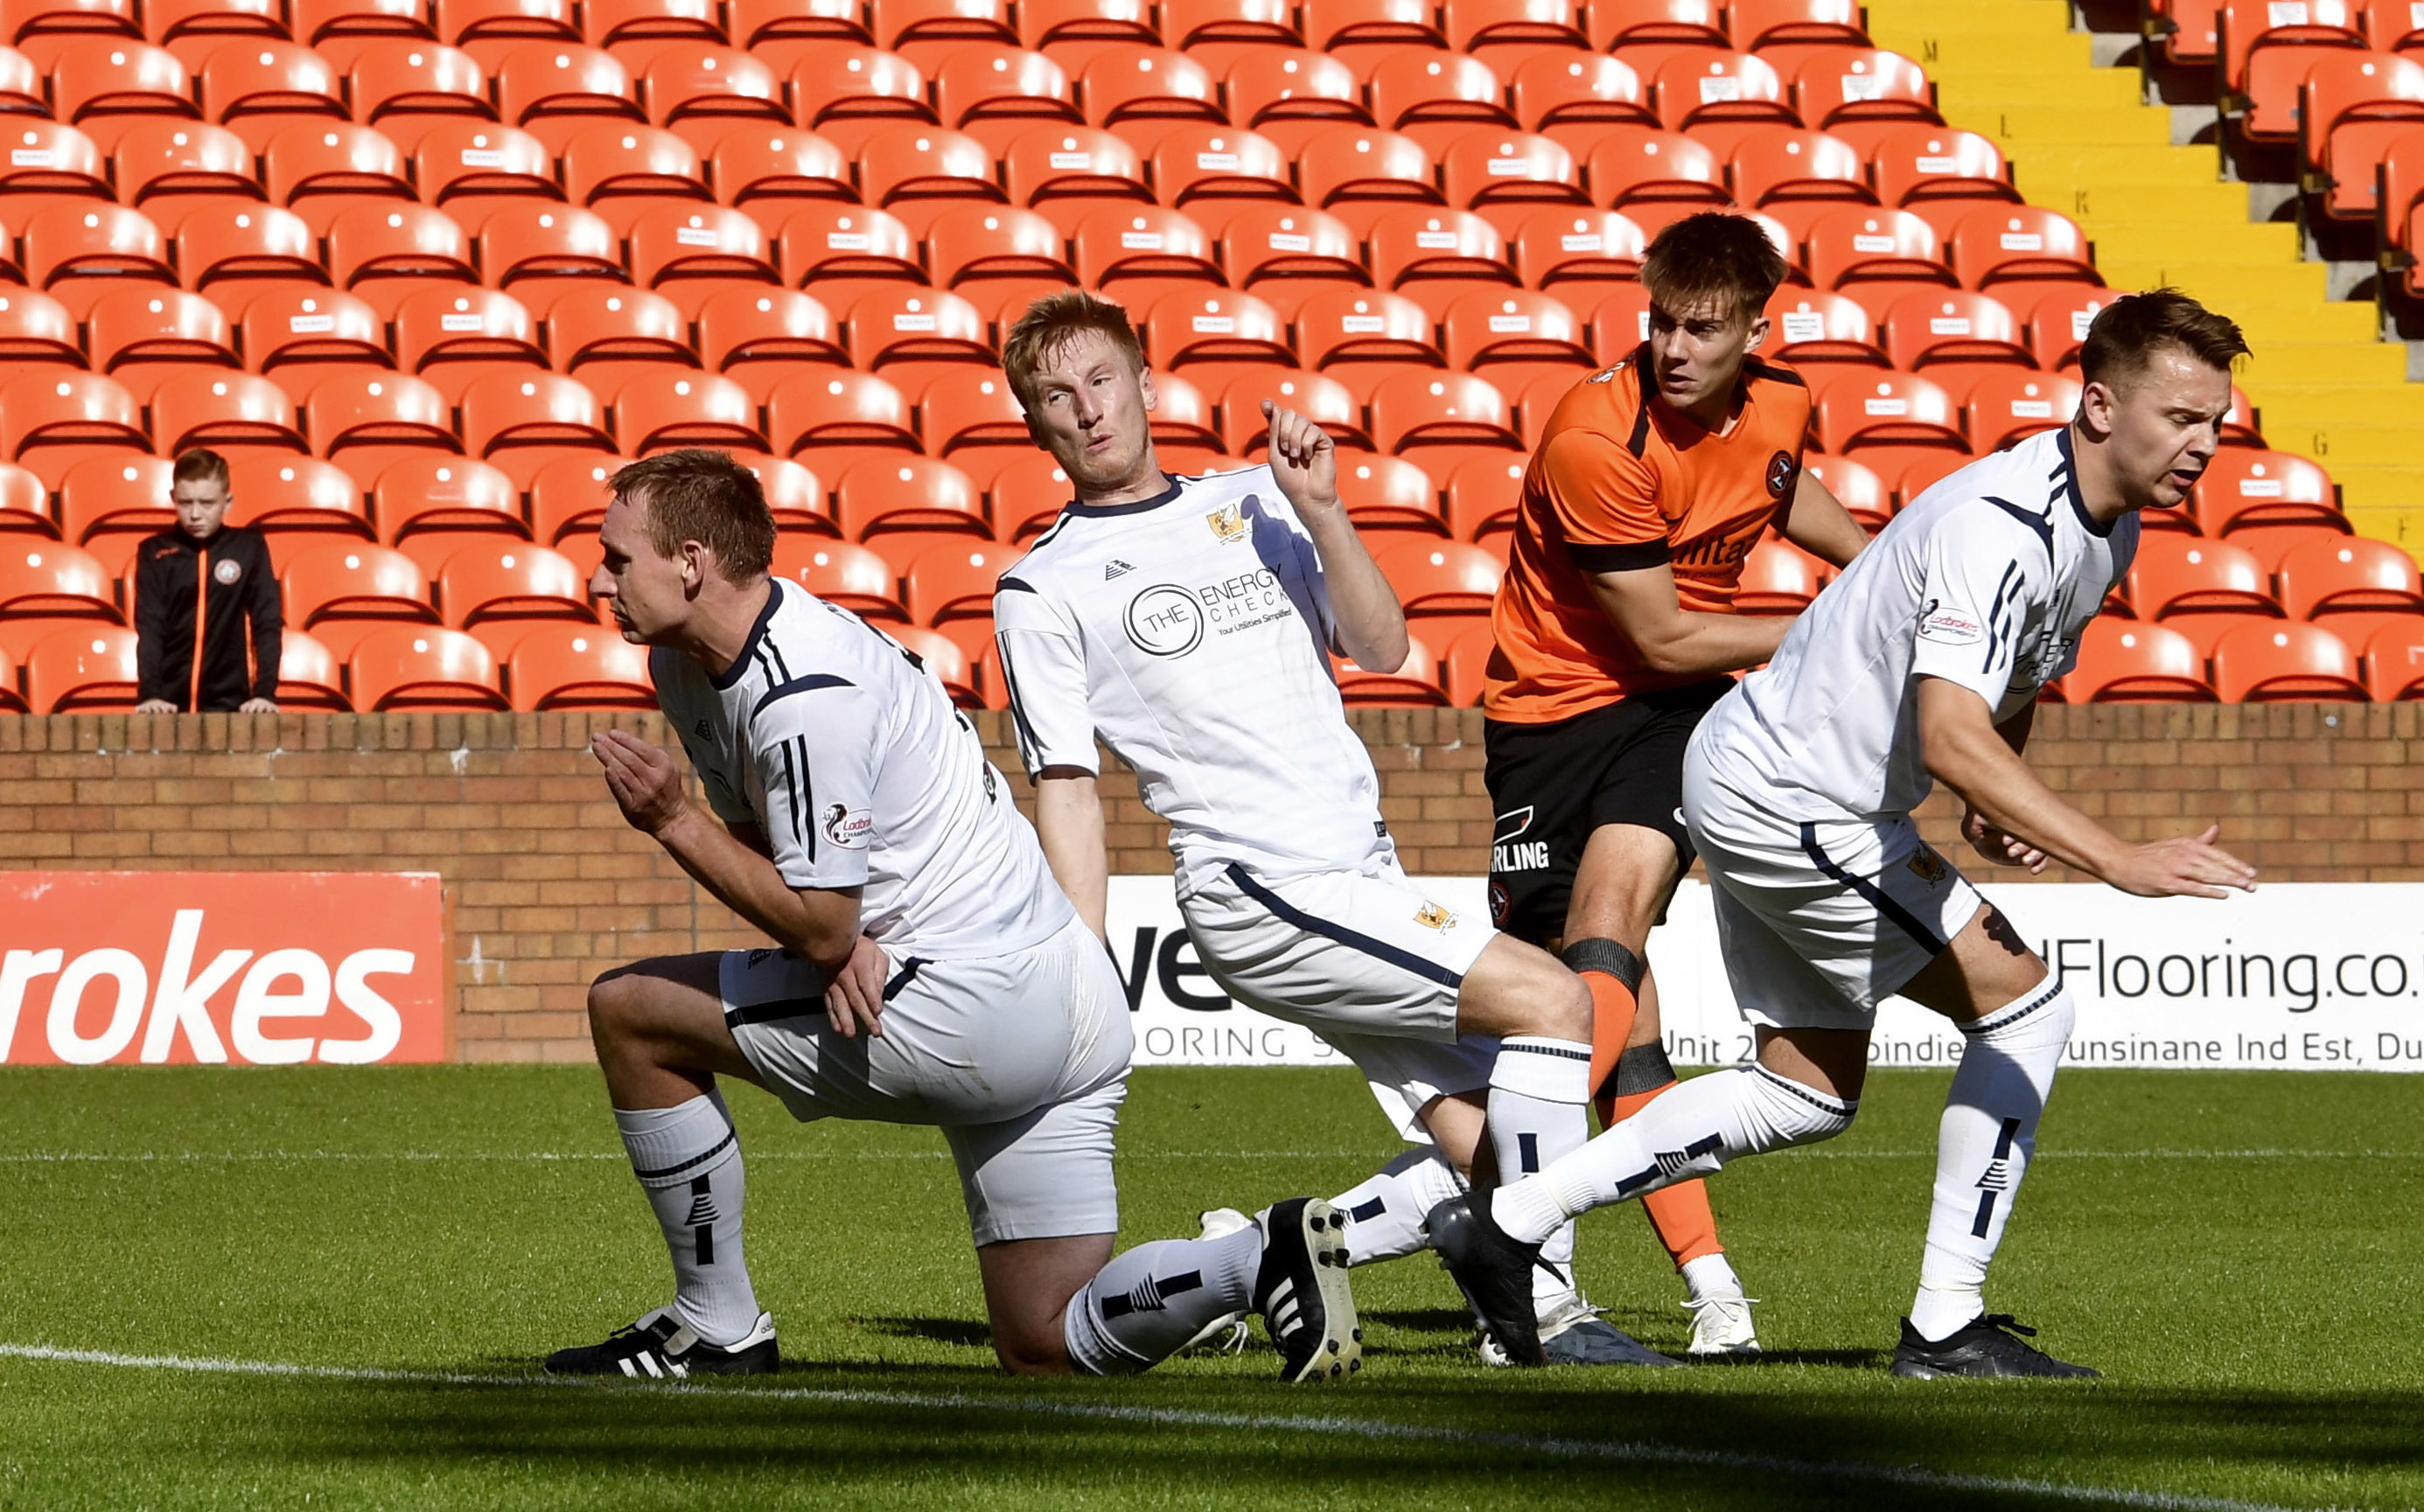 Matty Smith scoring against Alloa in the Irn-Bru Cup earlier this season.